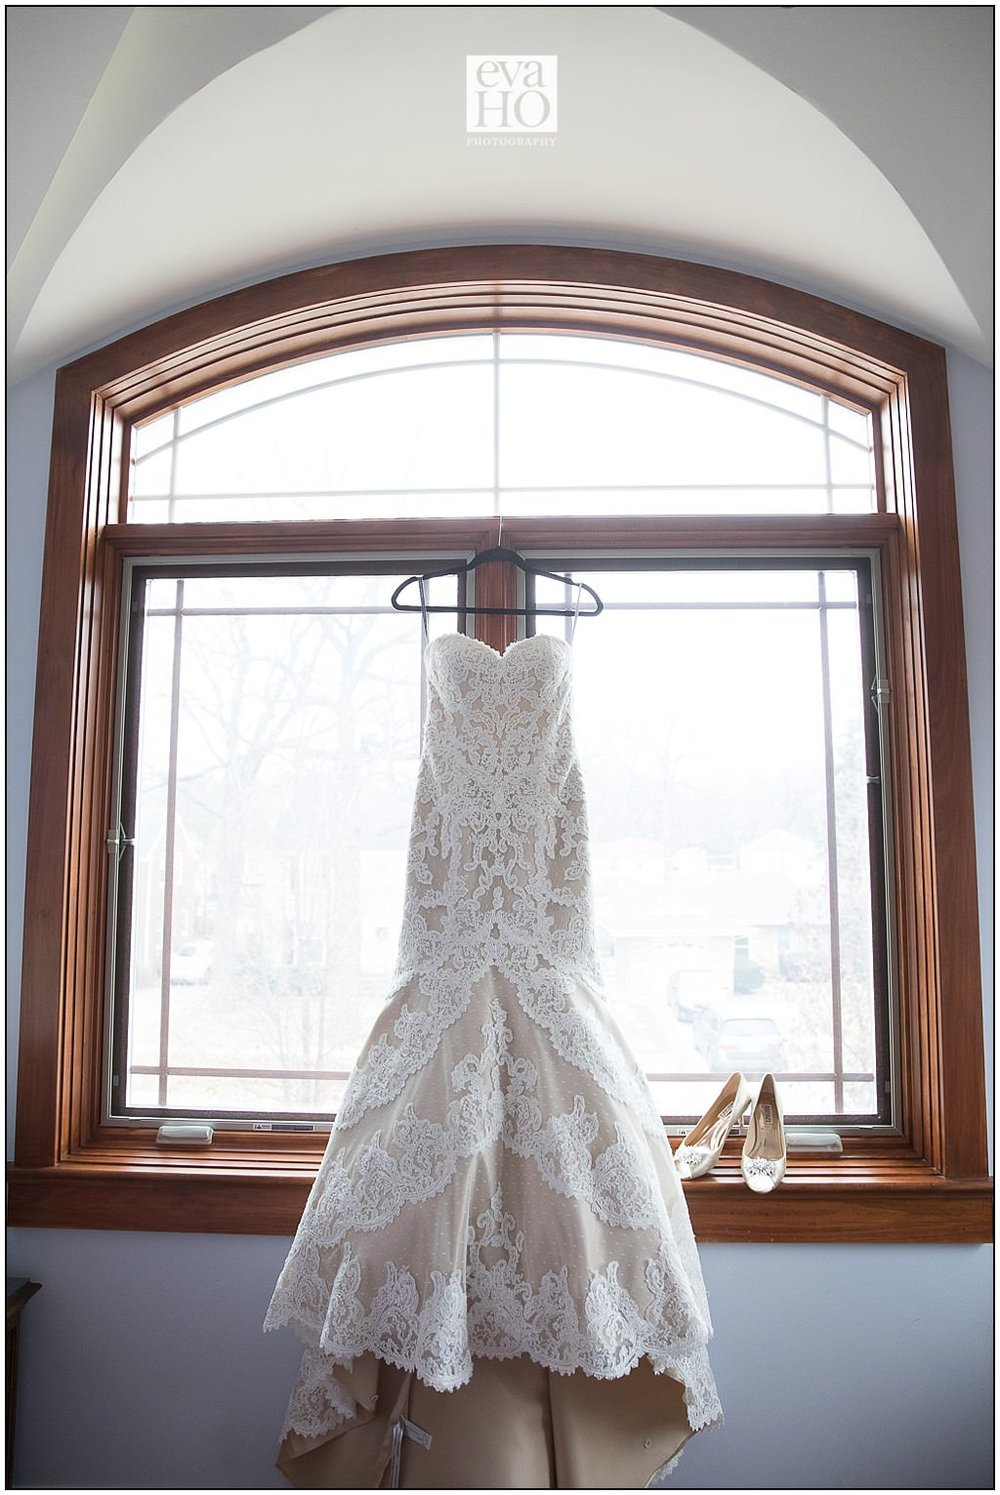 This dress! I have no words. It was so stunning on the hanger, but even more stunning on the bride!